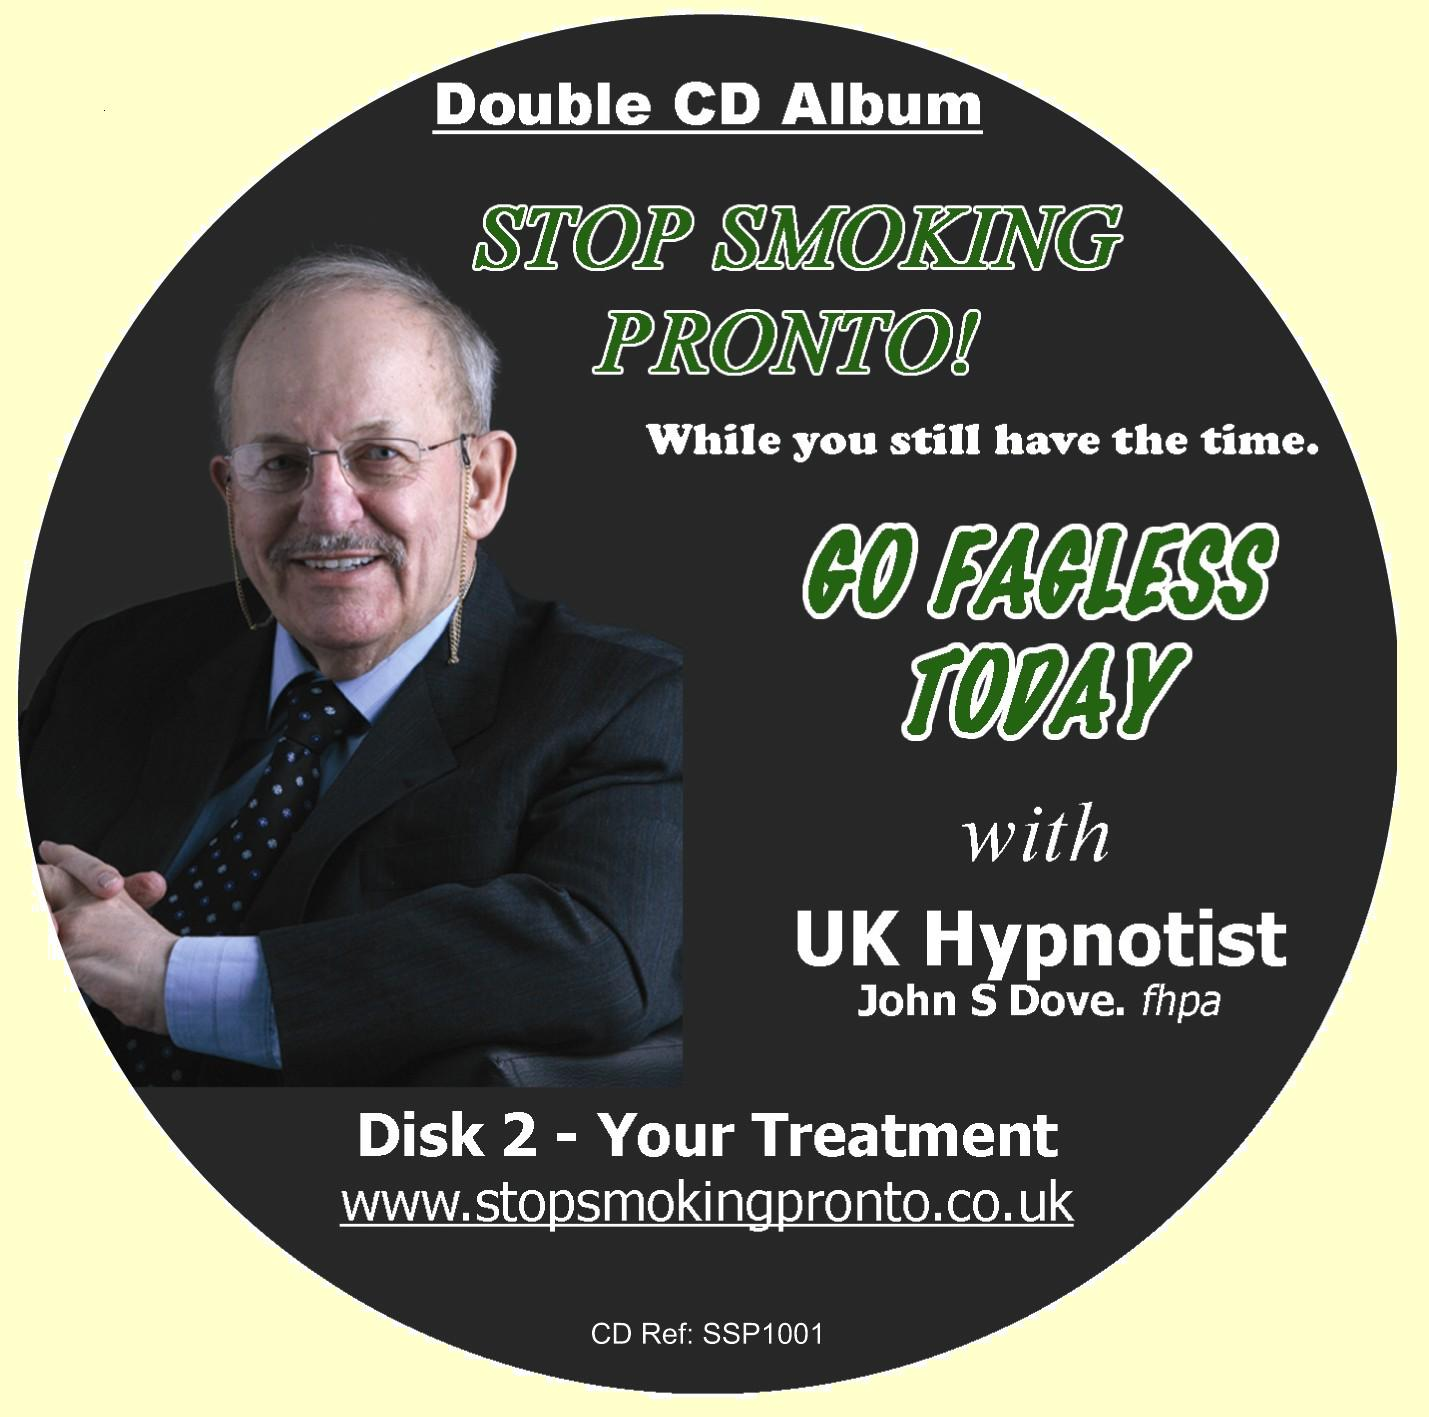 Double CD Album BUY NOW